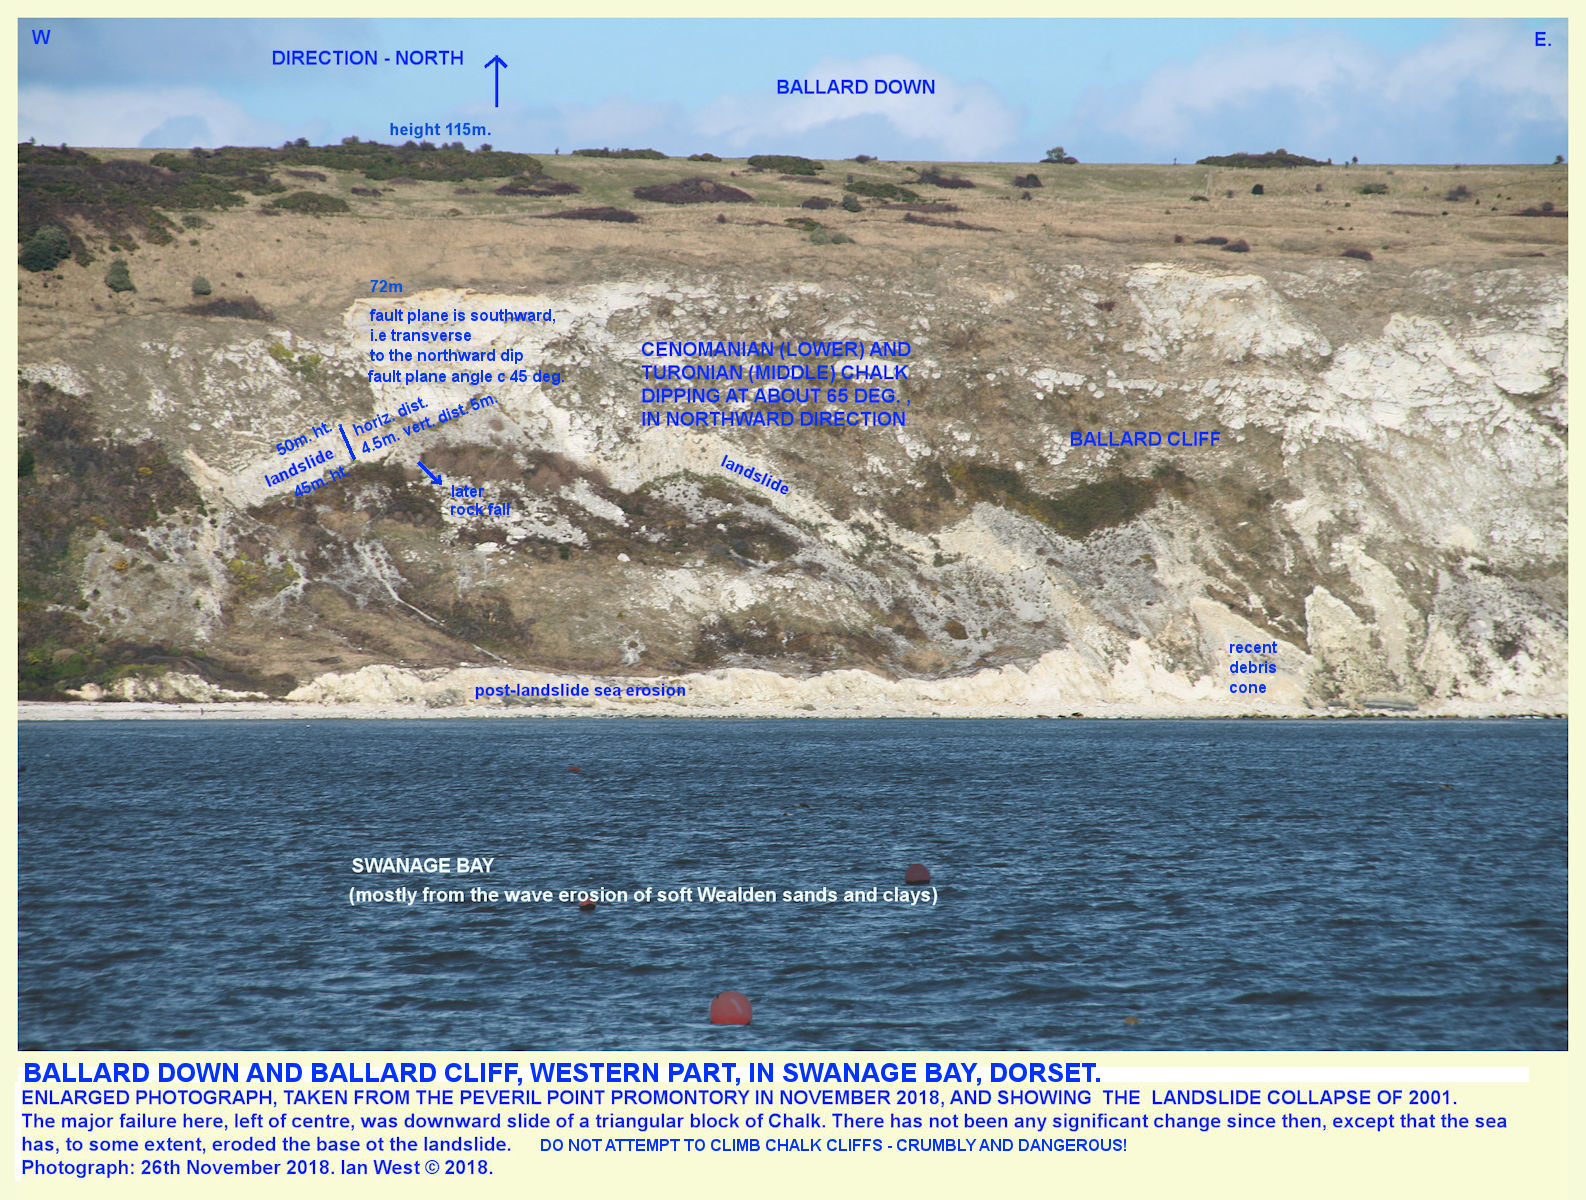 Geology of Swanage Bay and Ballard Cliff - by Ian West